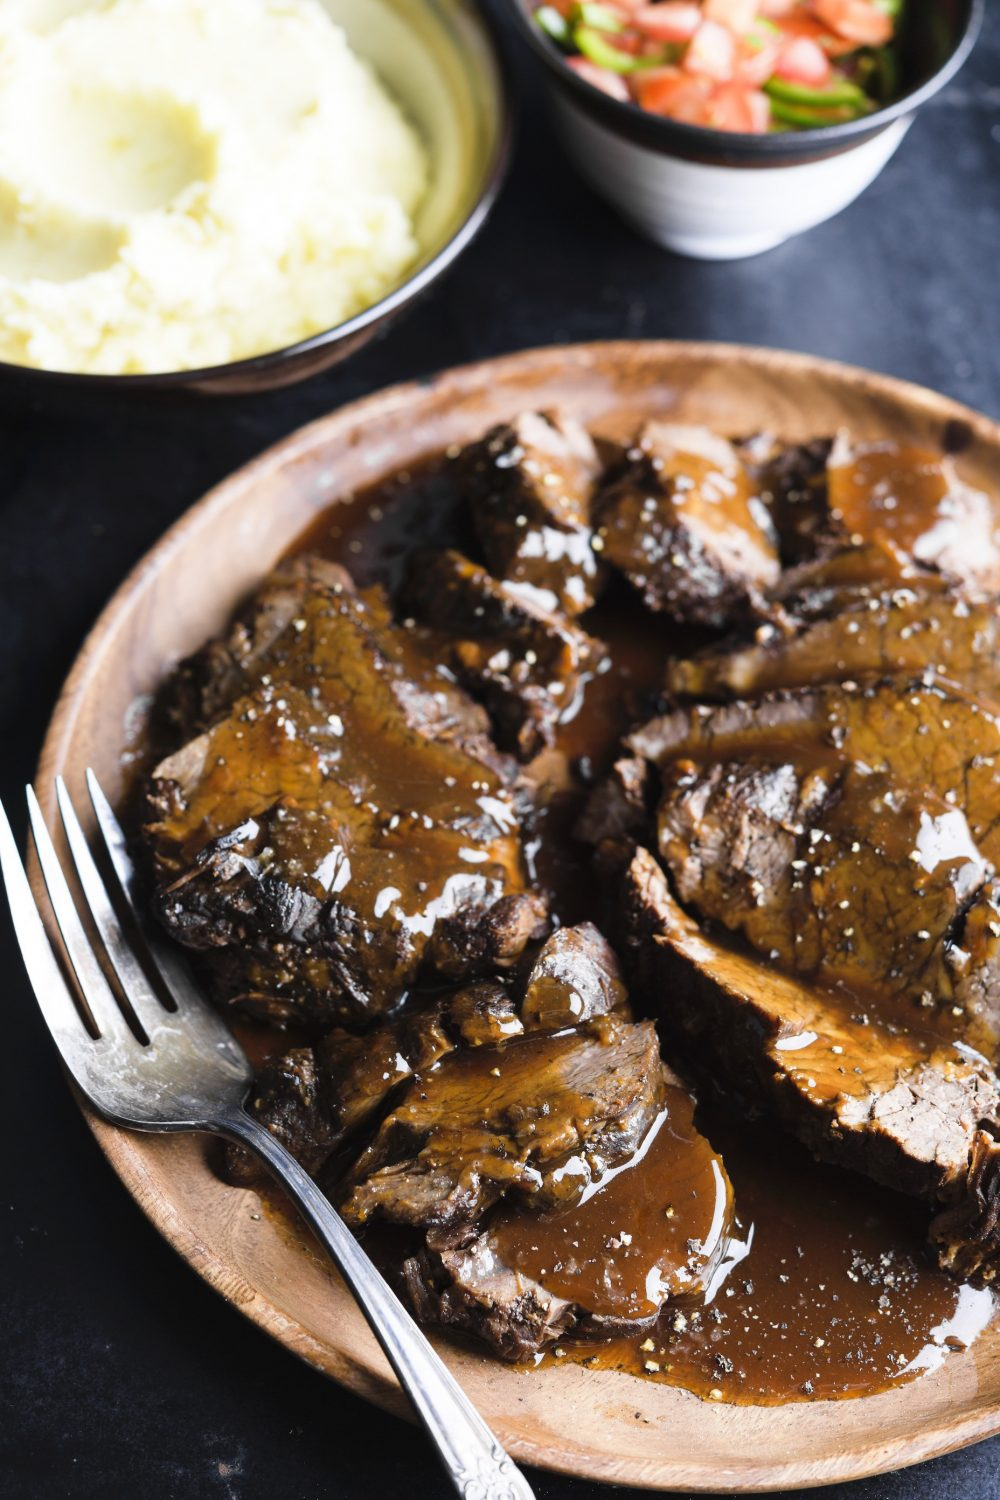 colombian-savory-sweet-braised-beef-fast-slow